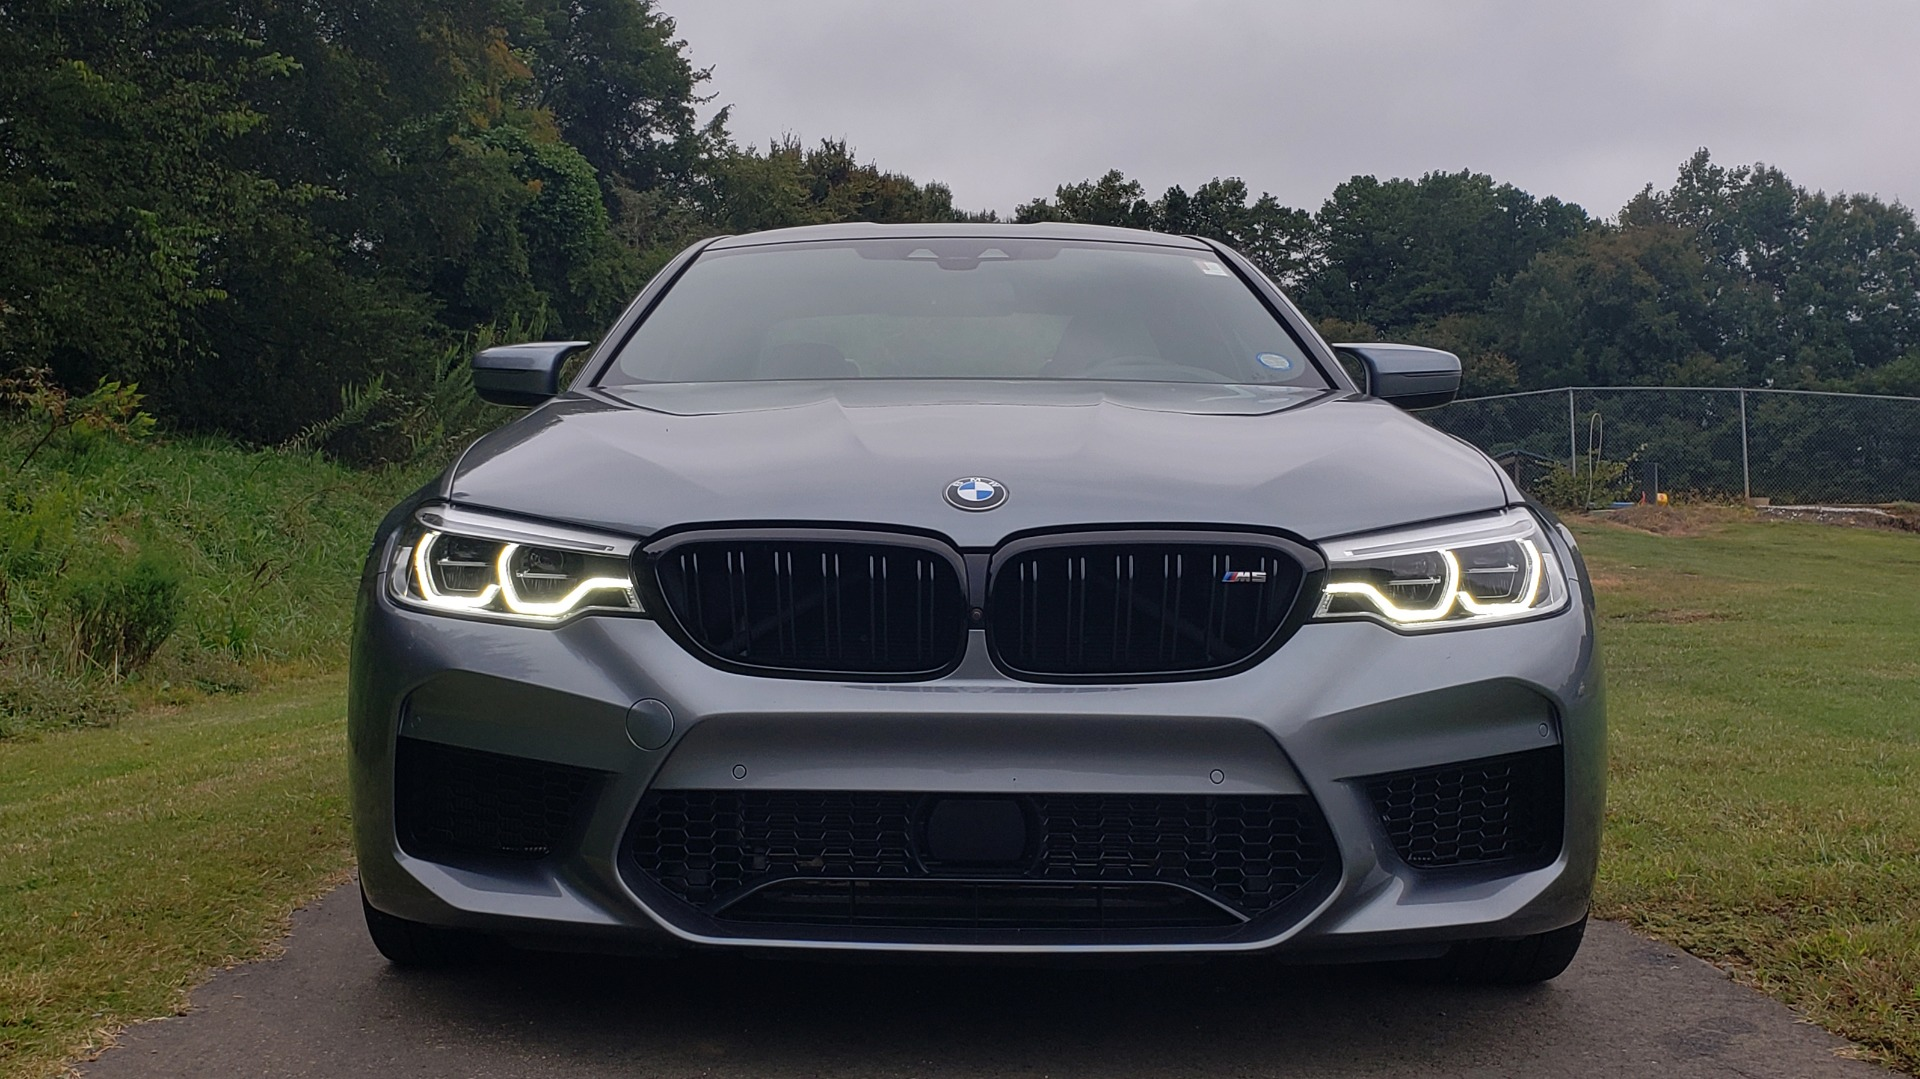 Used 2019 BMW M5 EXEC PKG / DRVR ASST PLUS / B&W SOUND / NAV / REARVIEW for sale Sold at Formula Imports in Charlotte NC 28227 14